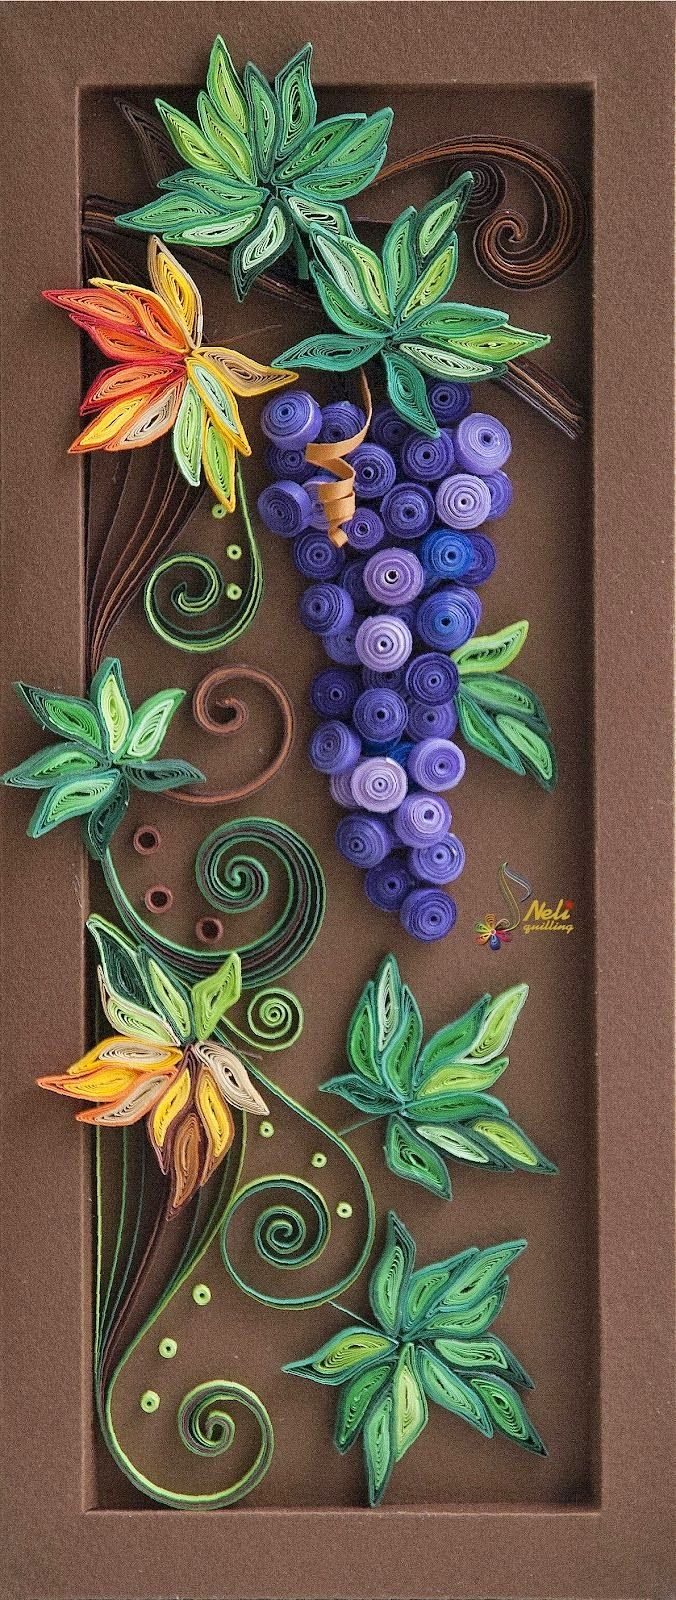 quilling quilling 45 beginners guide on diy quilling paper art and 43 exceptional quilling designs to materialize solutioingenieria Image collections